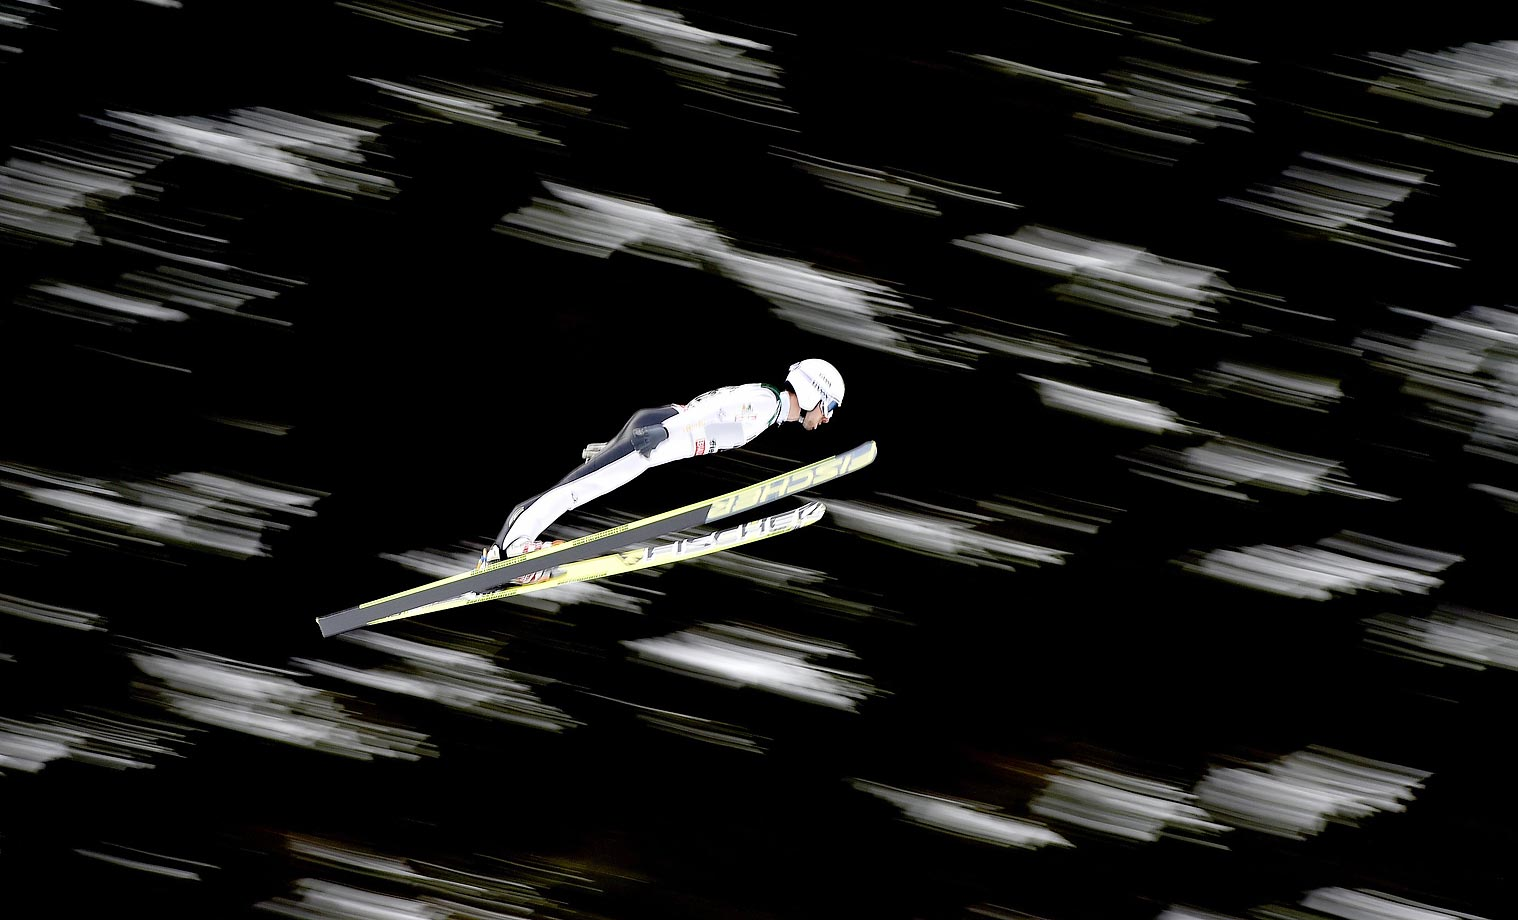 Maxime Laheurte of France competes during the FIS Nordic World Cup HS134/10k in Val di Fiemme, Italy.